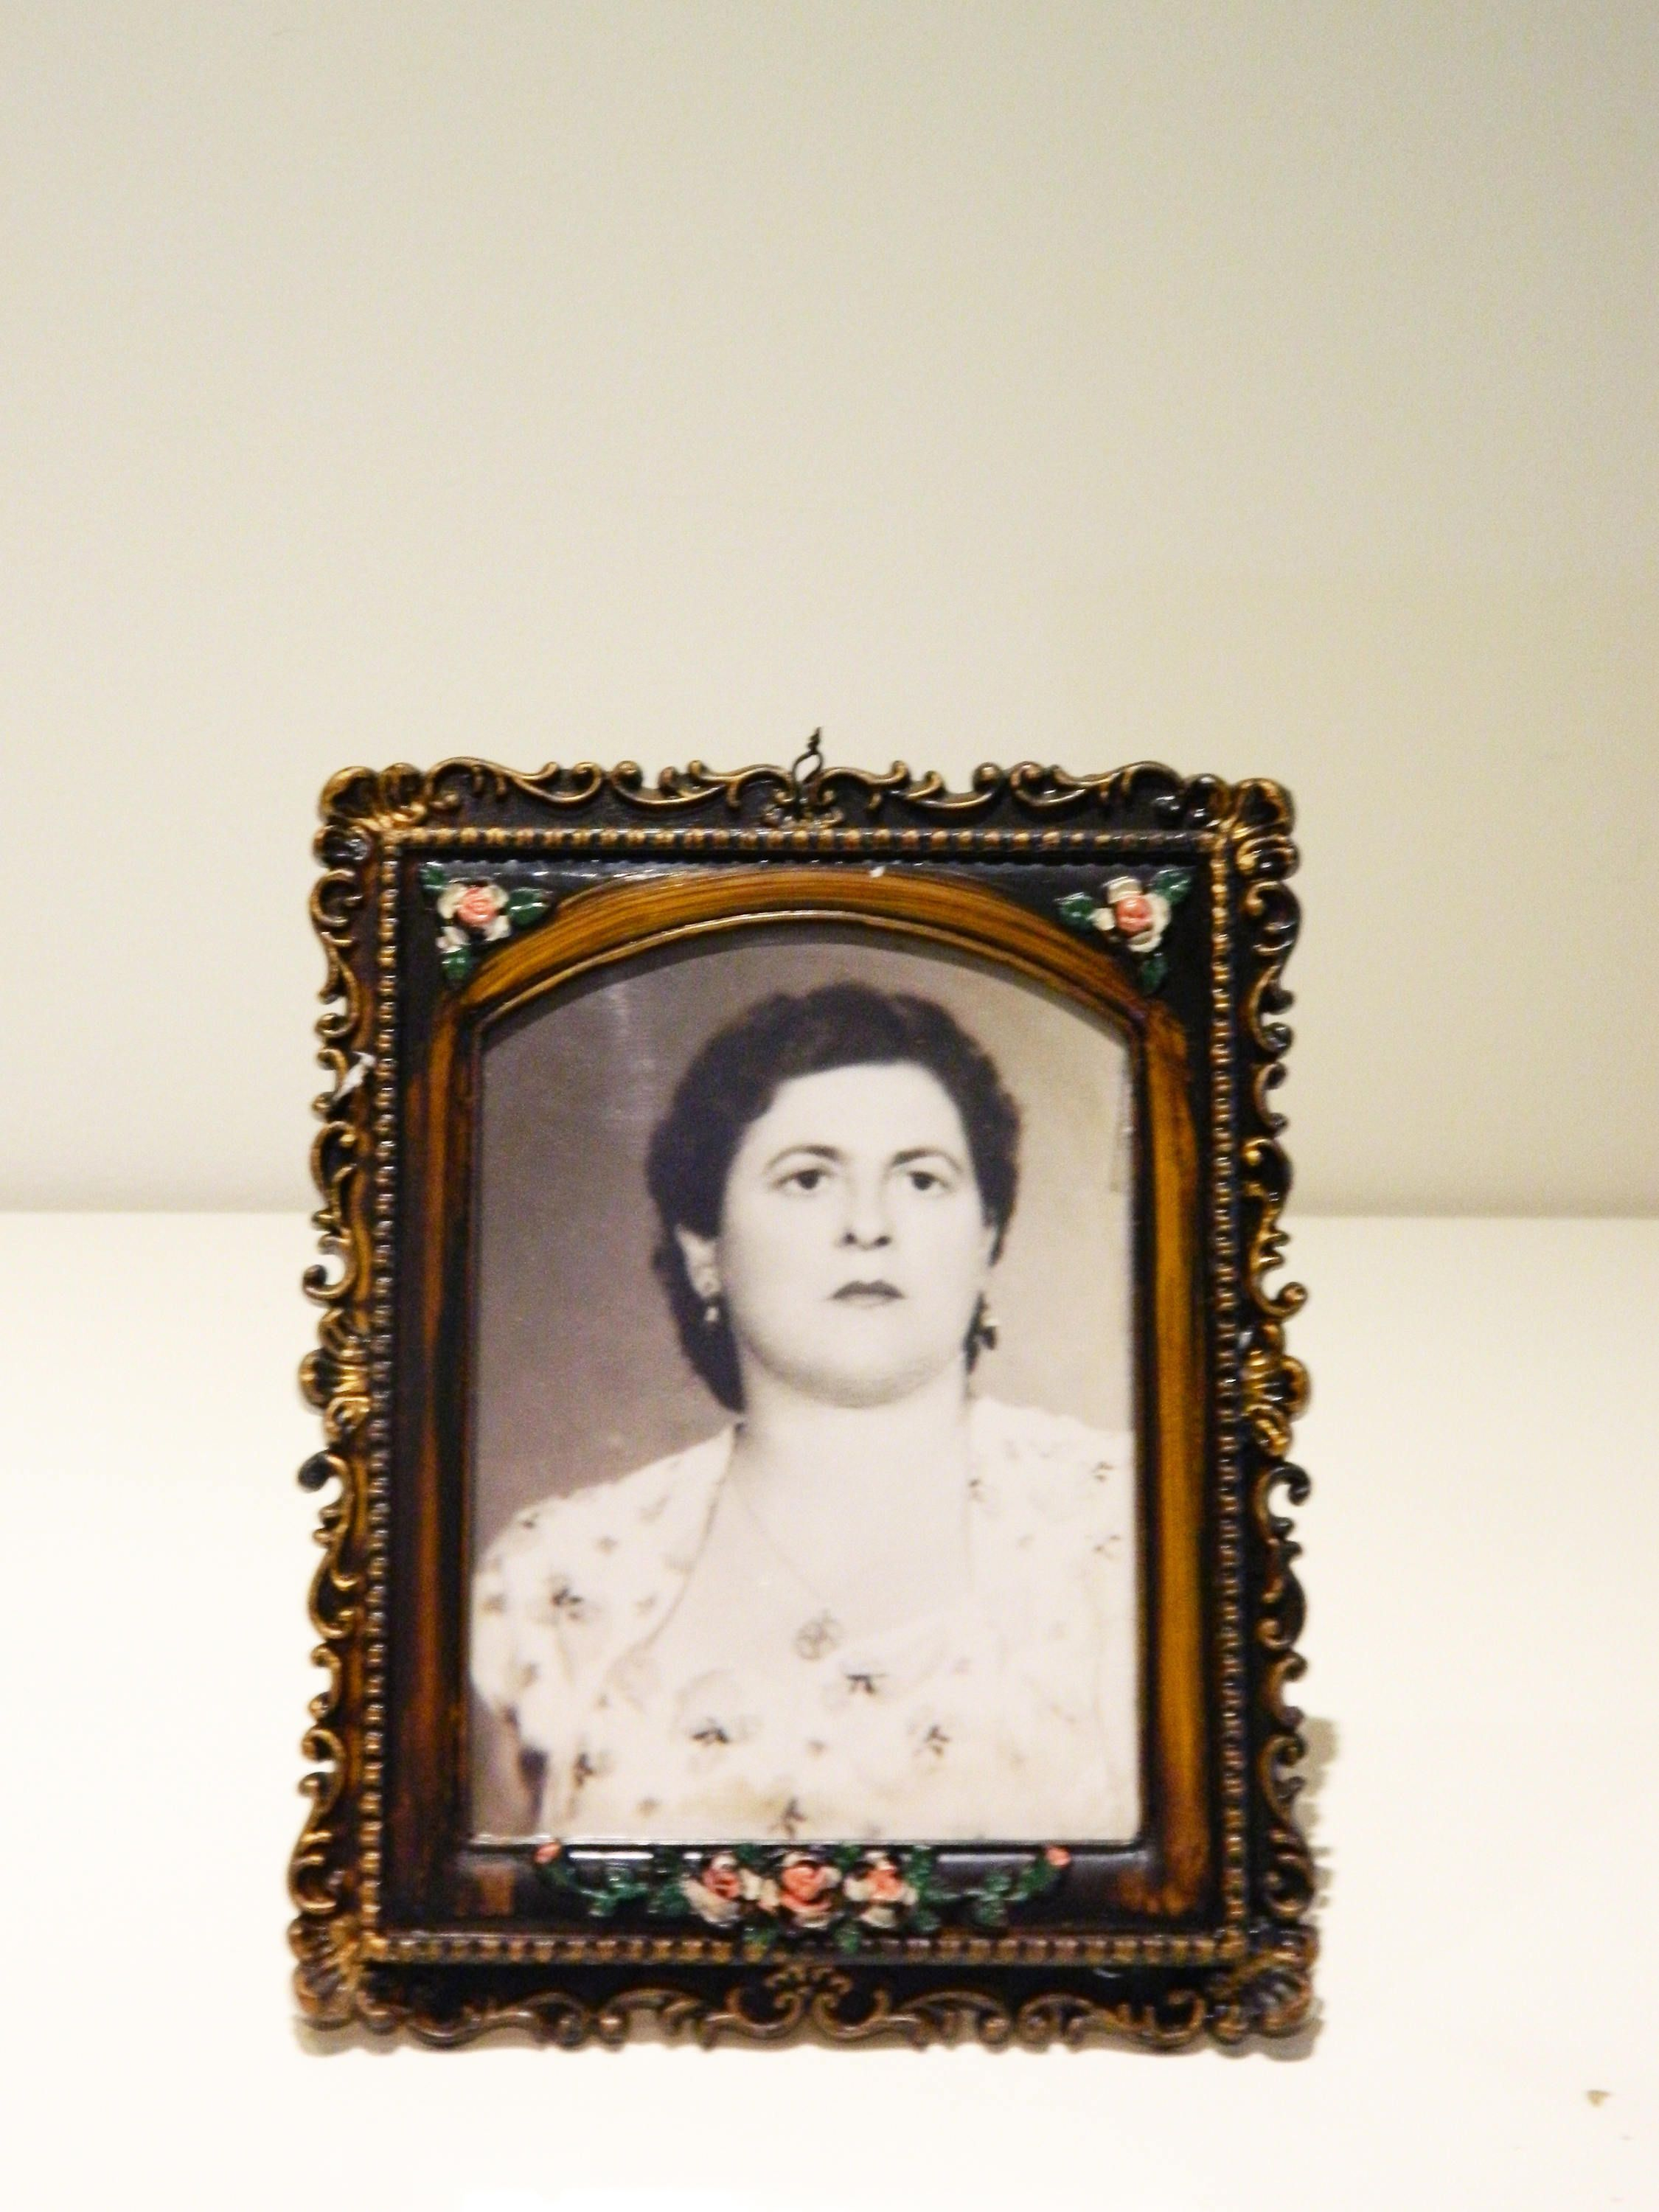 Vintage Plastic Floral Frame With Black And White